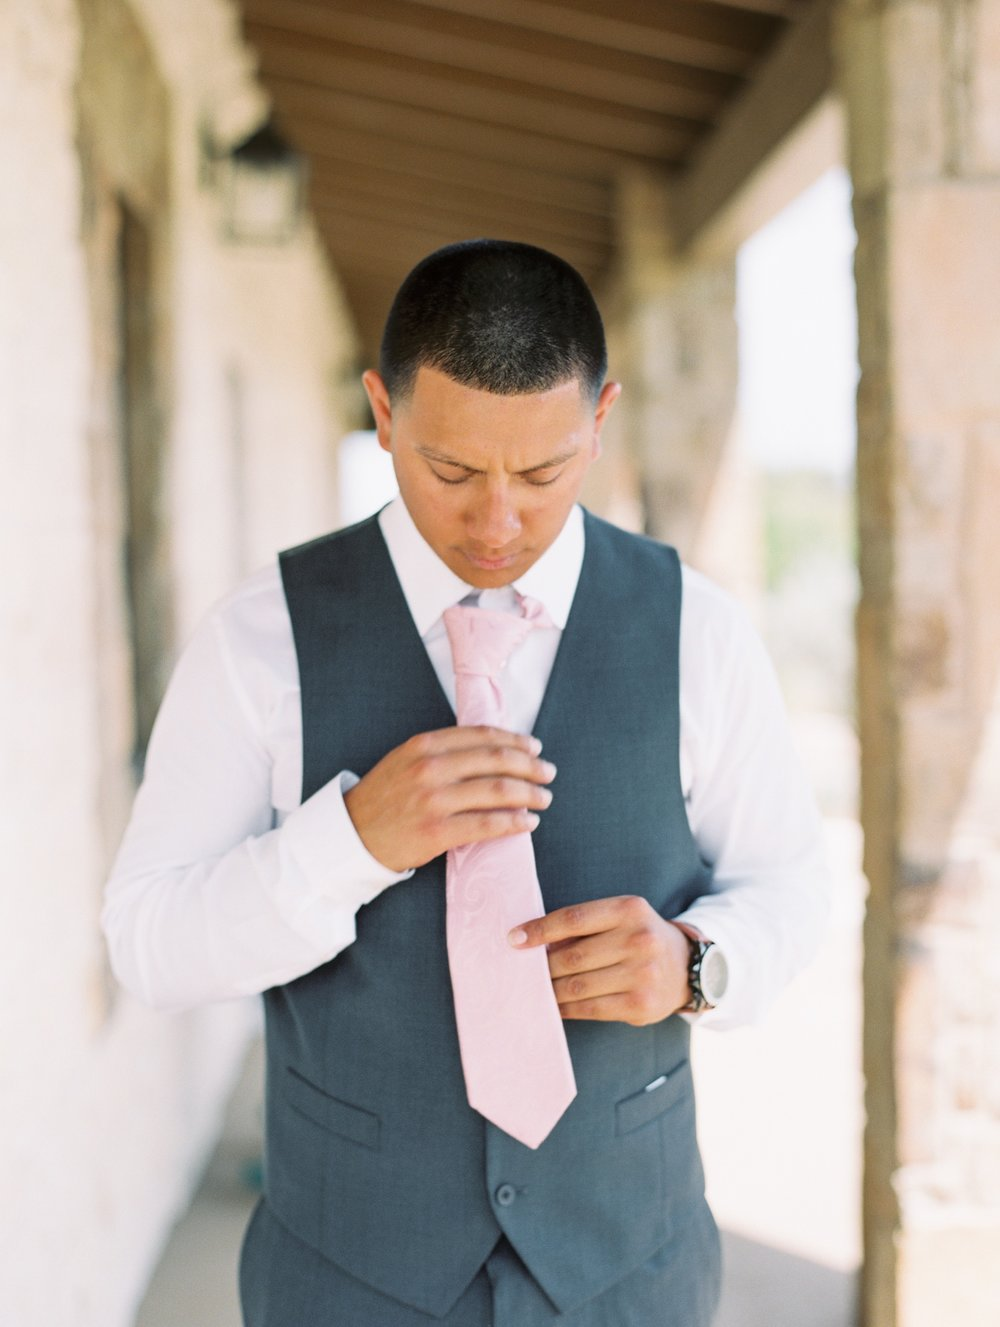 Hill Country Wedding Austin Texas Wedding Photographer_0010.jpg